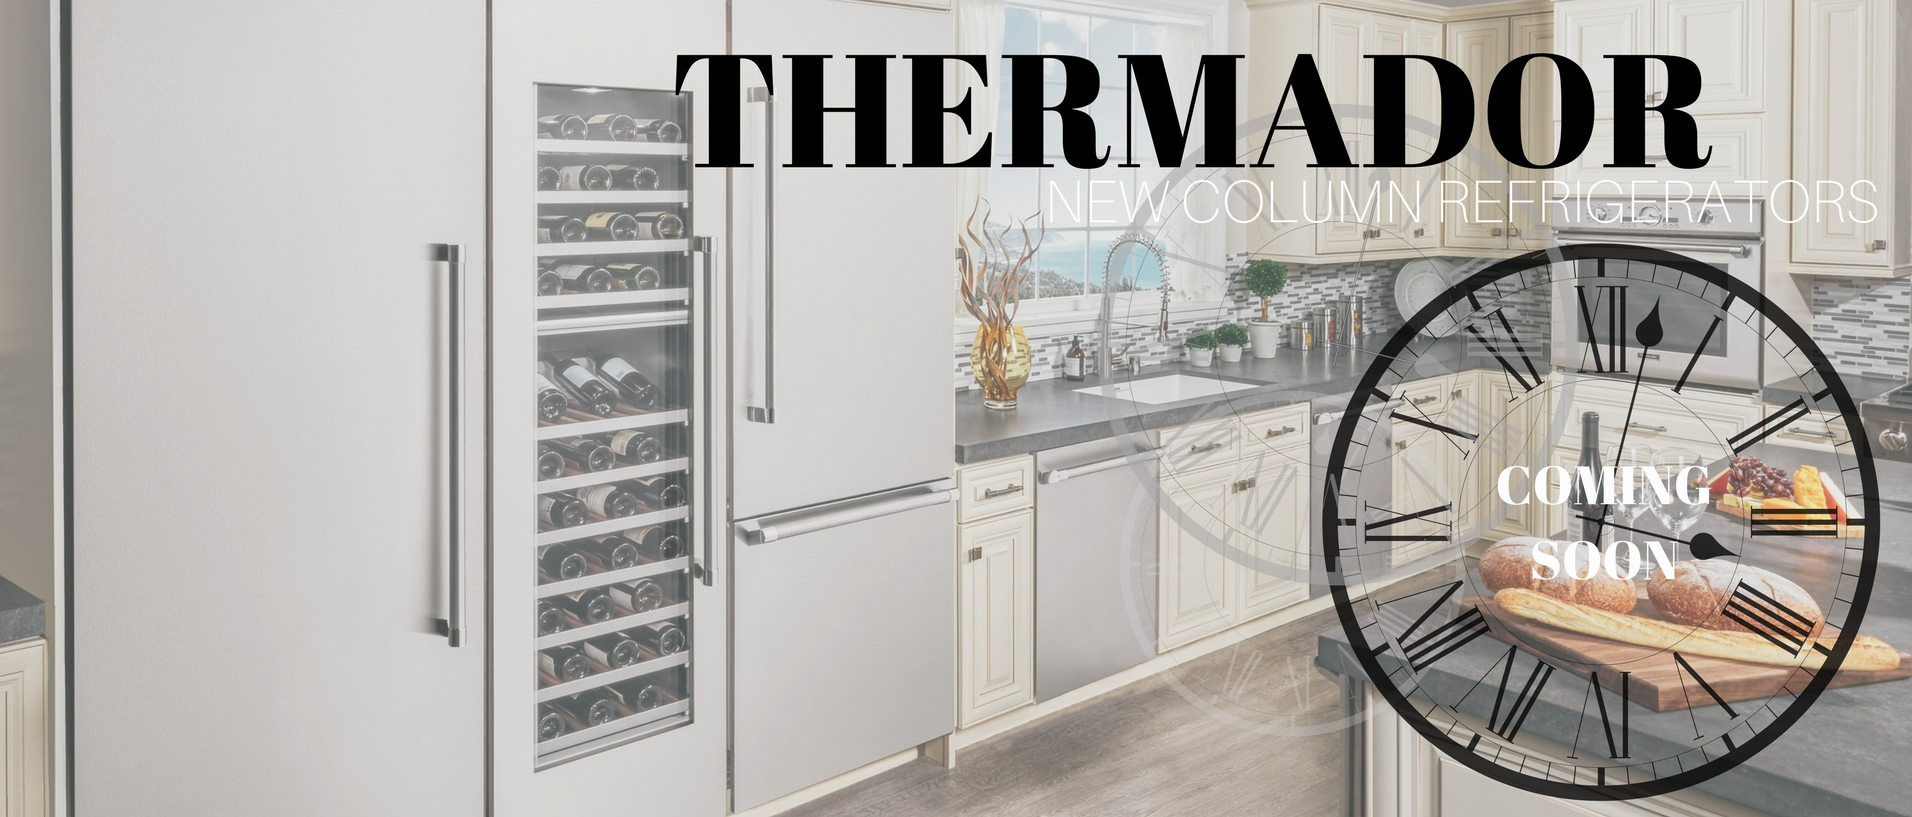 Maytag Washer Wiring Diagram Besides Dishwasher On New Appliances From Thermador Column Refrigeration People Often Fear Change So Much That They Sometimes Overlook The Positive Outcomes Their Choices Produce Whether Its Choosing A Color For